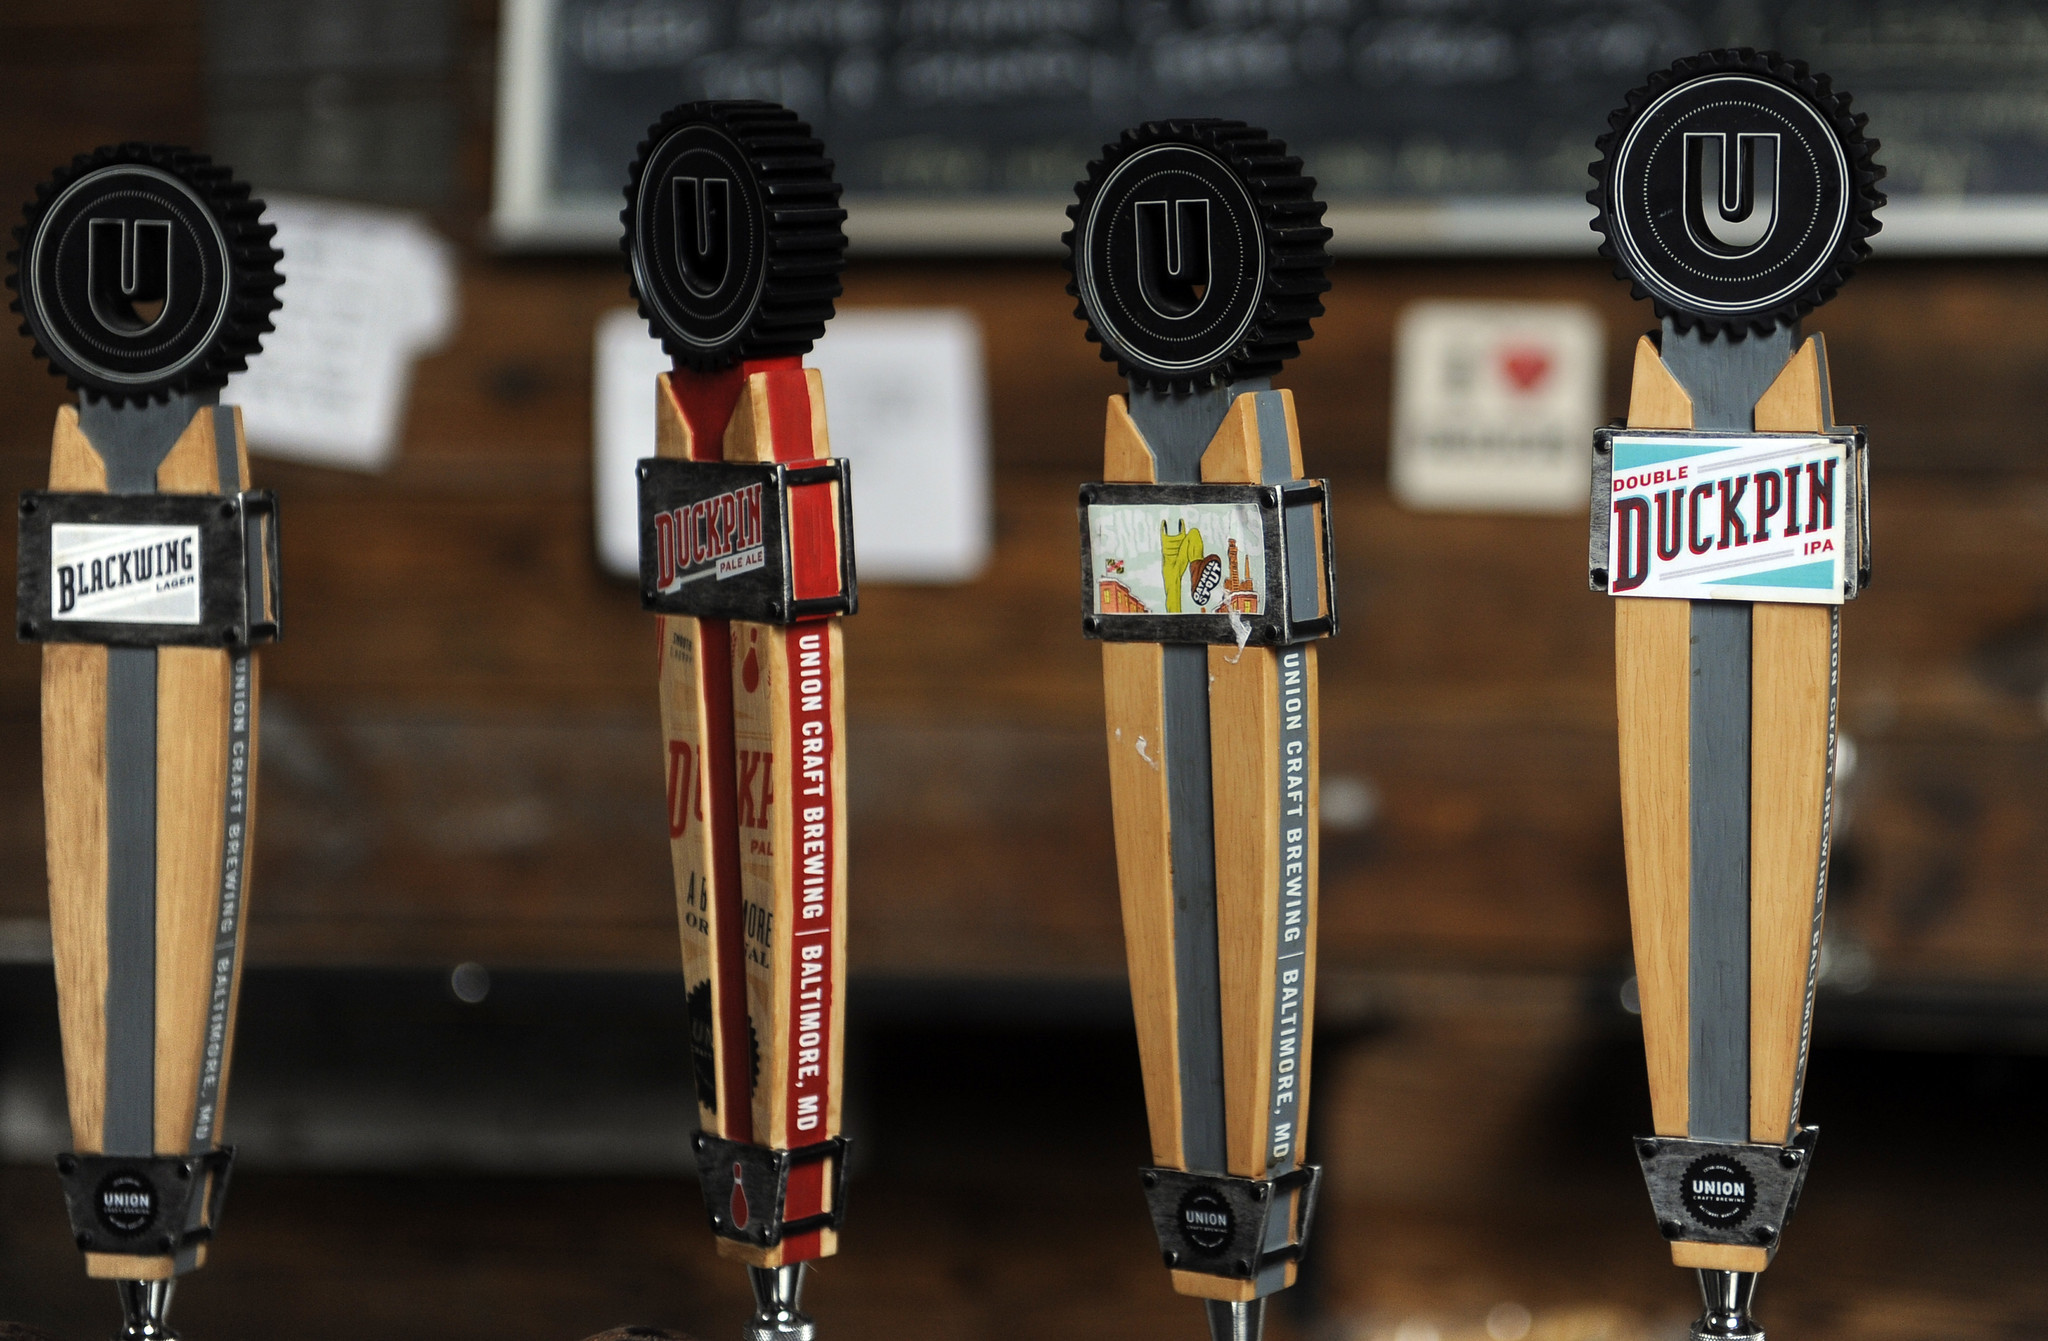 New food items at Oriole Park, and some returning favorites [Pictures] - Union Craft Brewing